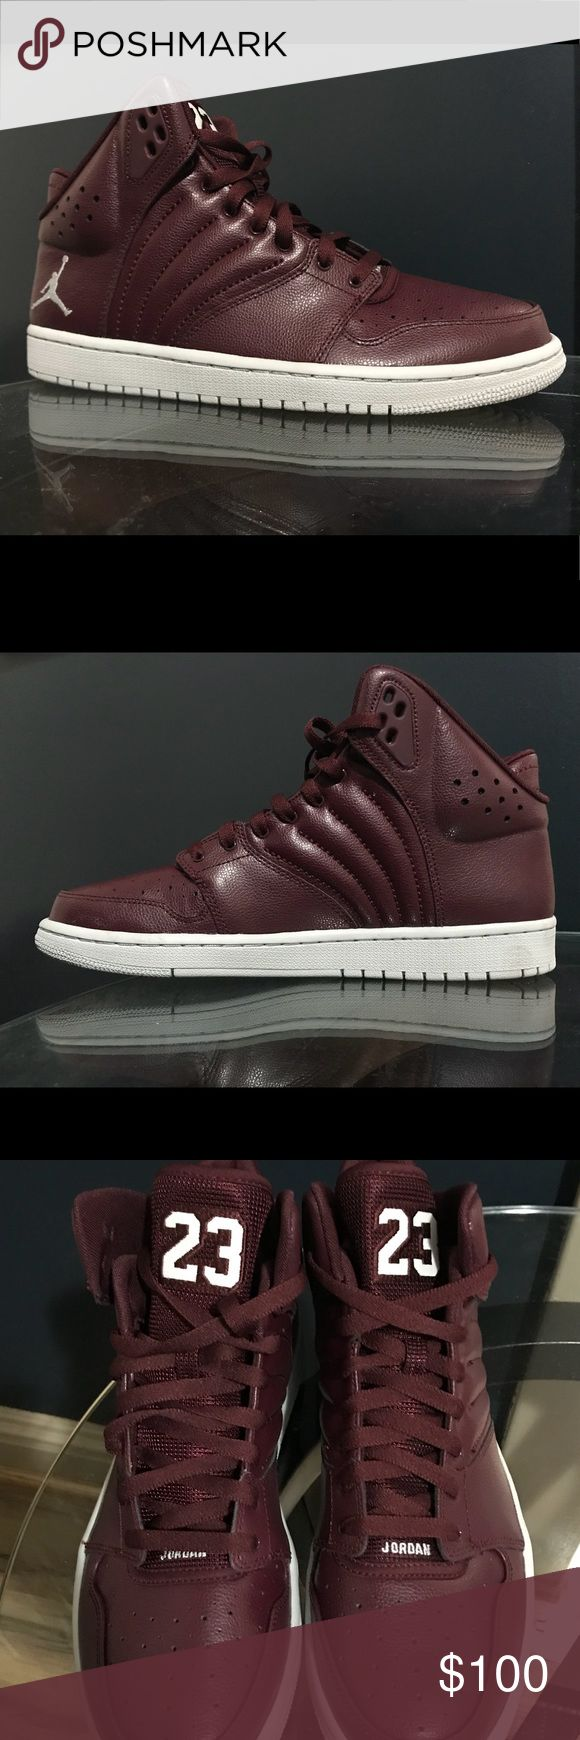 NIB Jordan 1 Flight 4 Night Maroon Pure Platinum Jordan 1 Flight 4 in Night Maroon and Pure Platinum New in box  820135 600 Men's size 10.5 & 8 Nike Shoes Sneakers